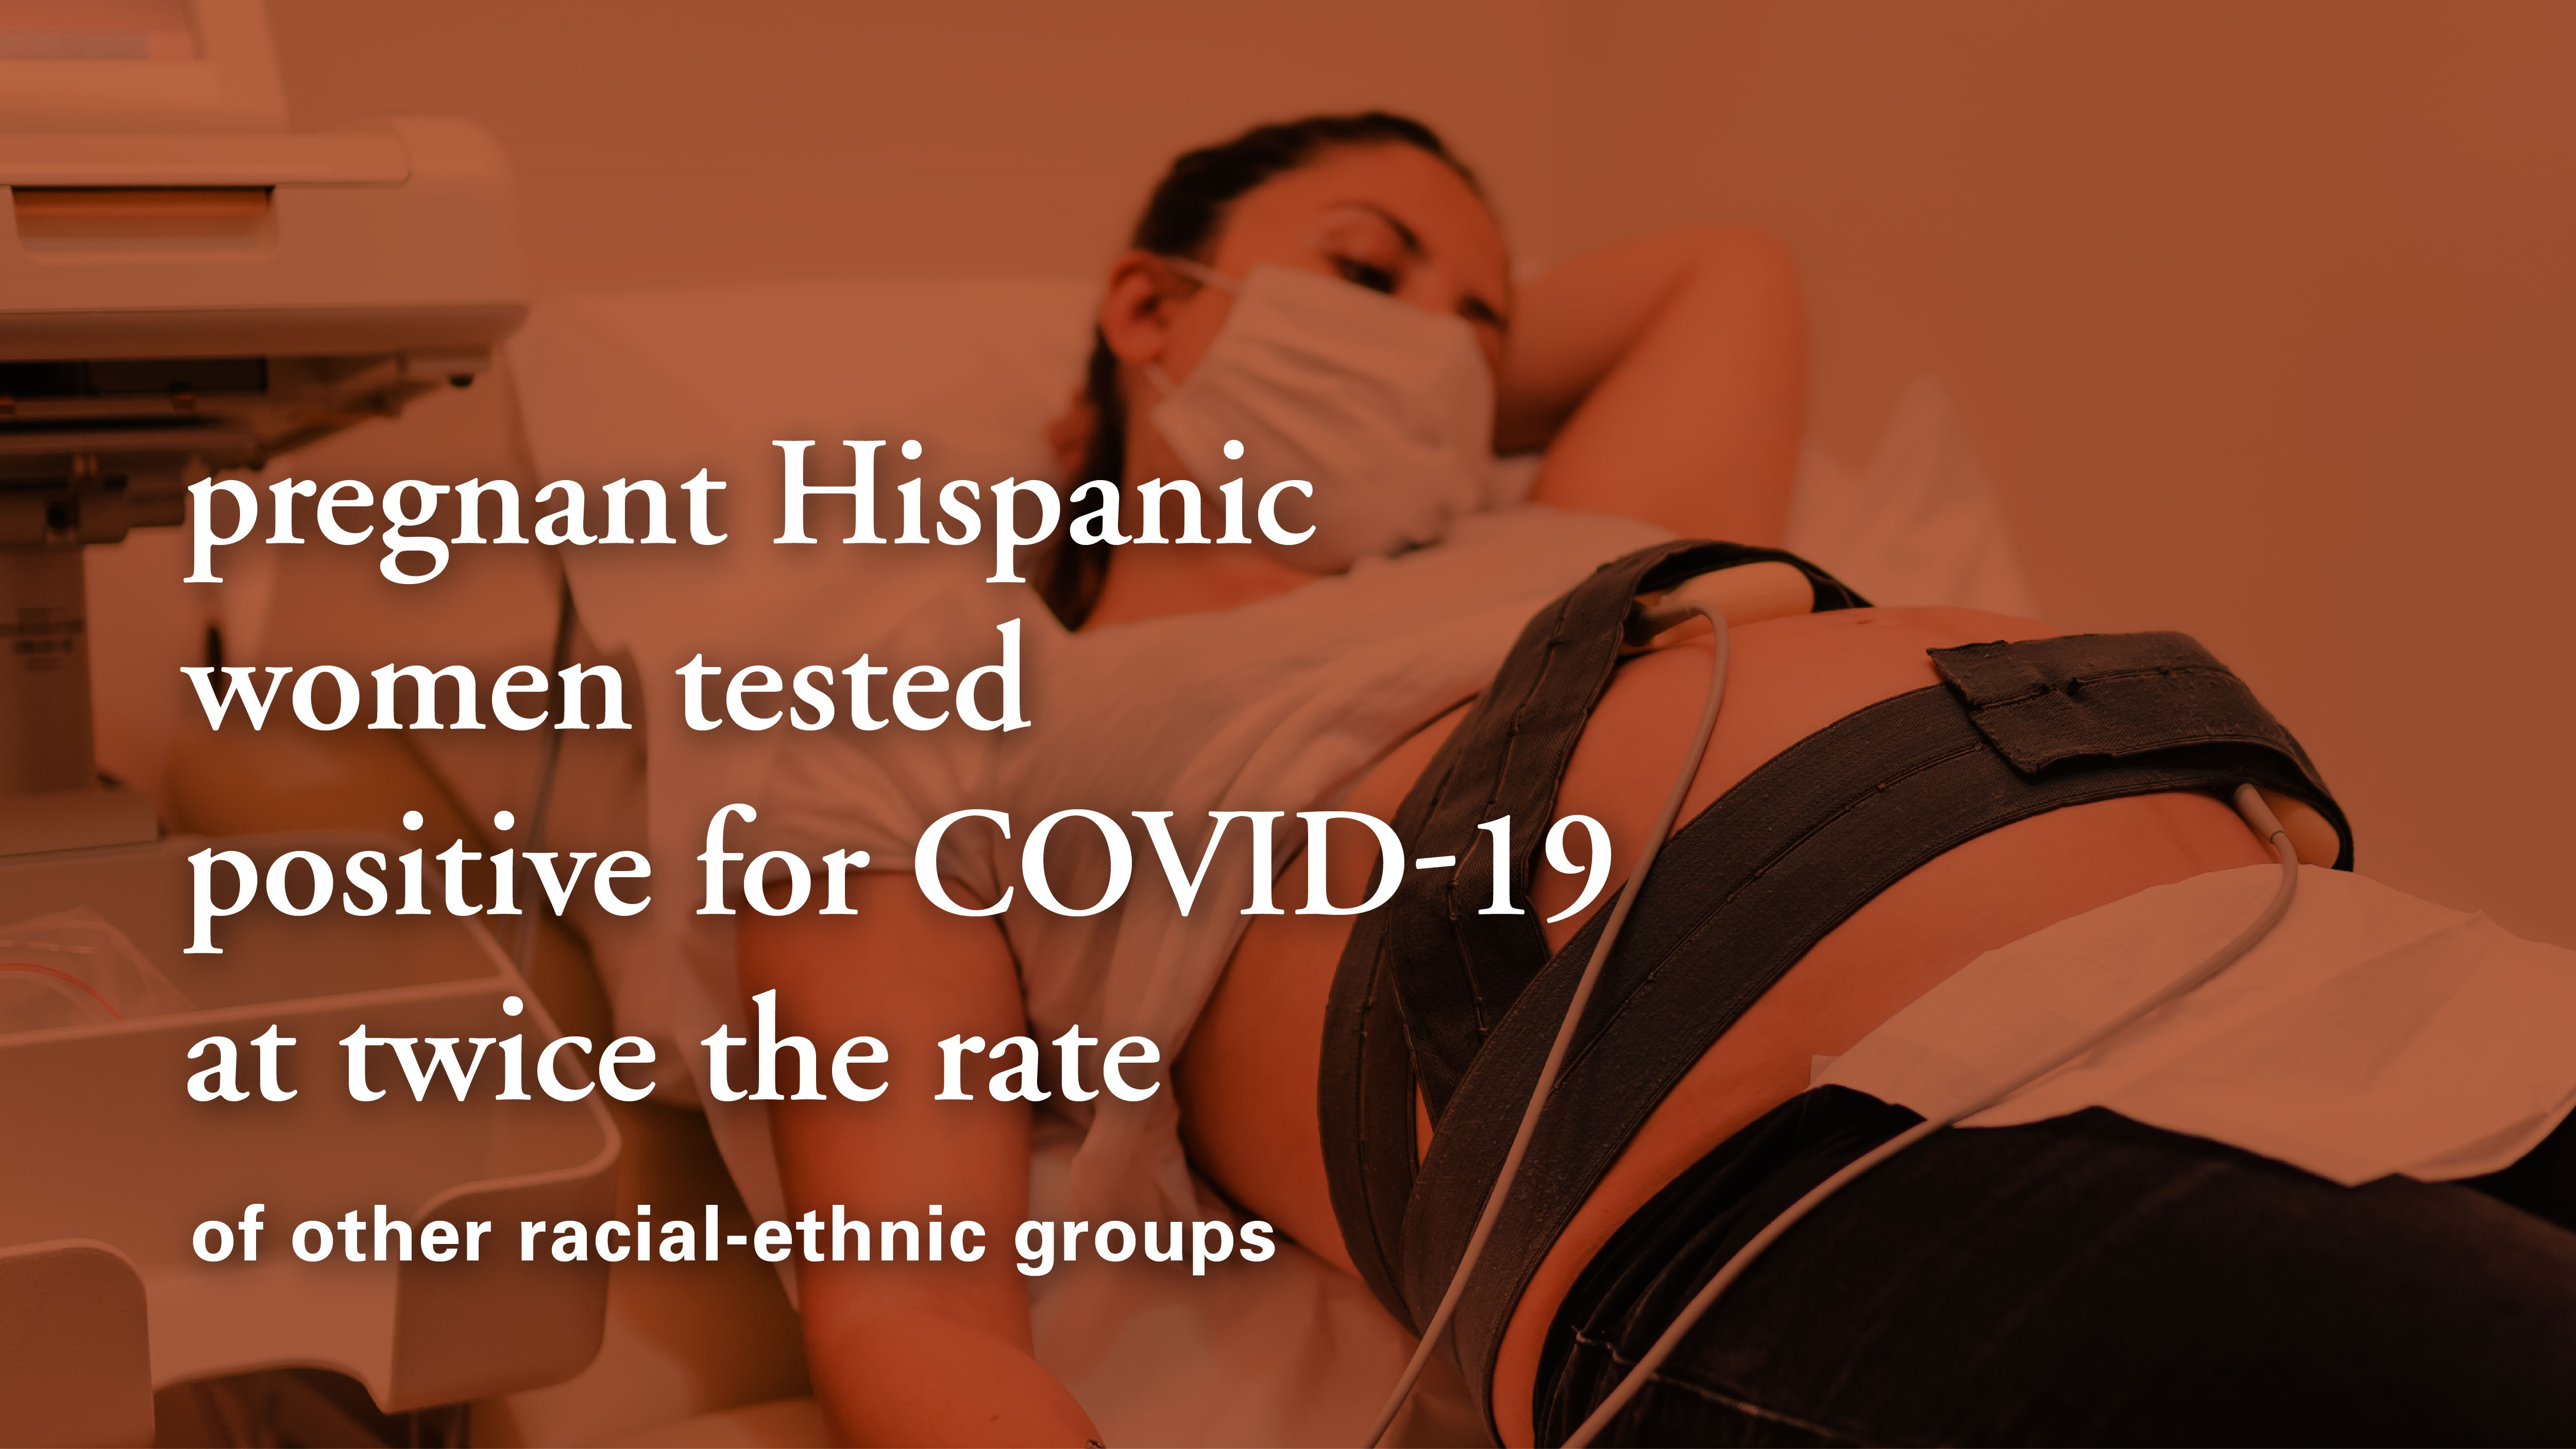 Pregnant Hispanic women tested positive for COVID-19 at nearly twice the rate of other racial-ethnic groups. (Photo by Getty Images and Lauren Mathews/UTHealth)